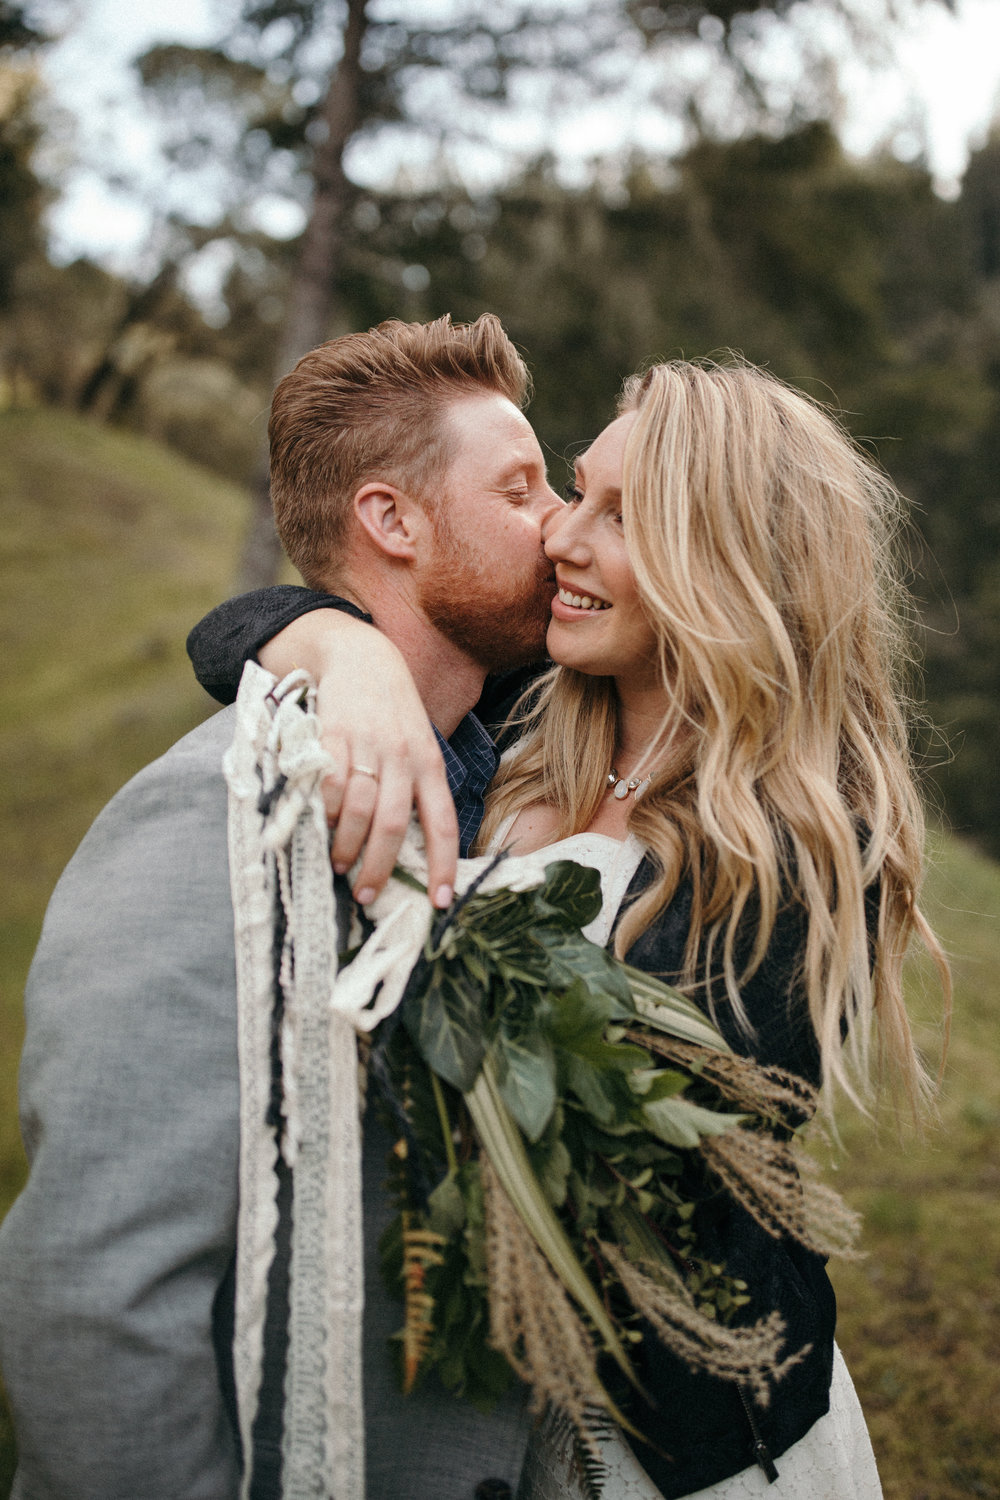 sanfrancisco-california-wedding-photographer-napa-california-engagements-west-marin-california-engagements-23.jpg